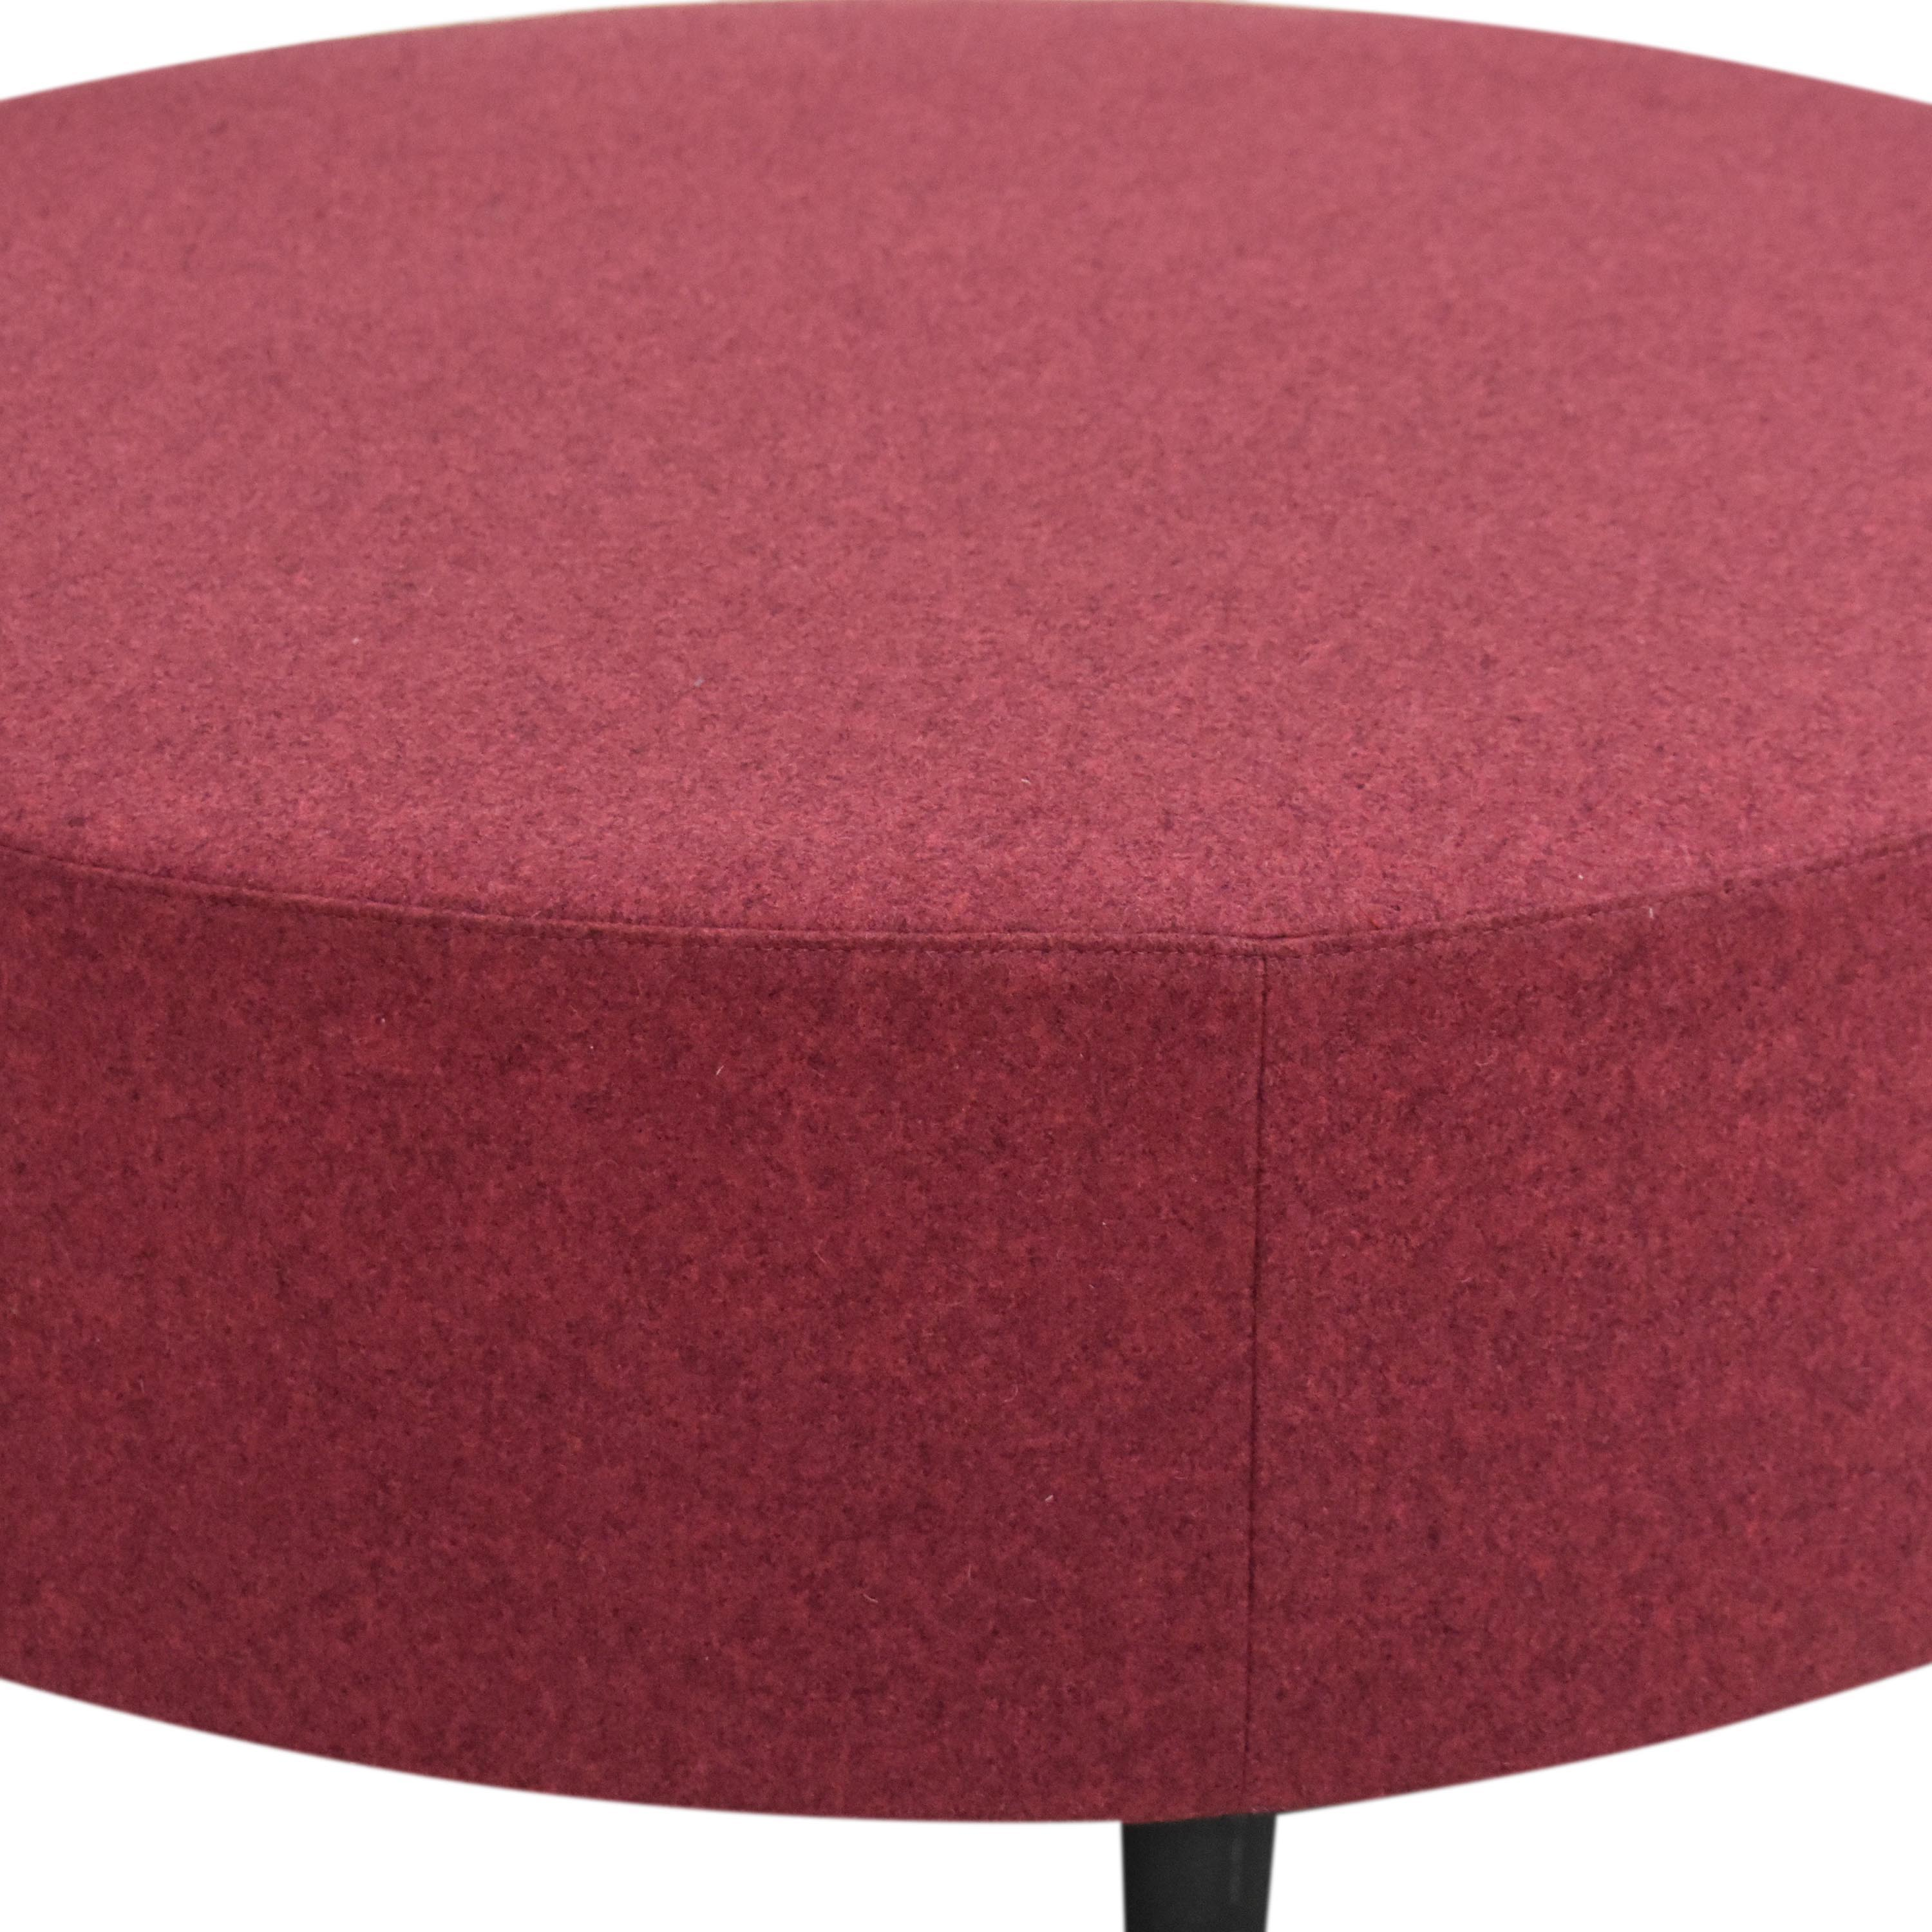 Global Furniture Group River Round Bench / Coffee Tables